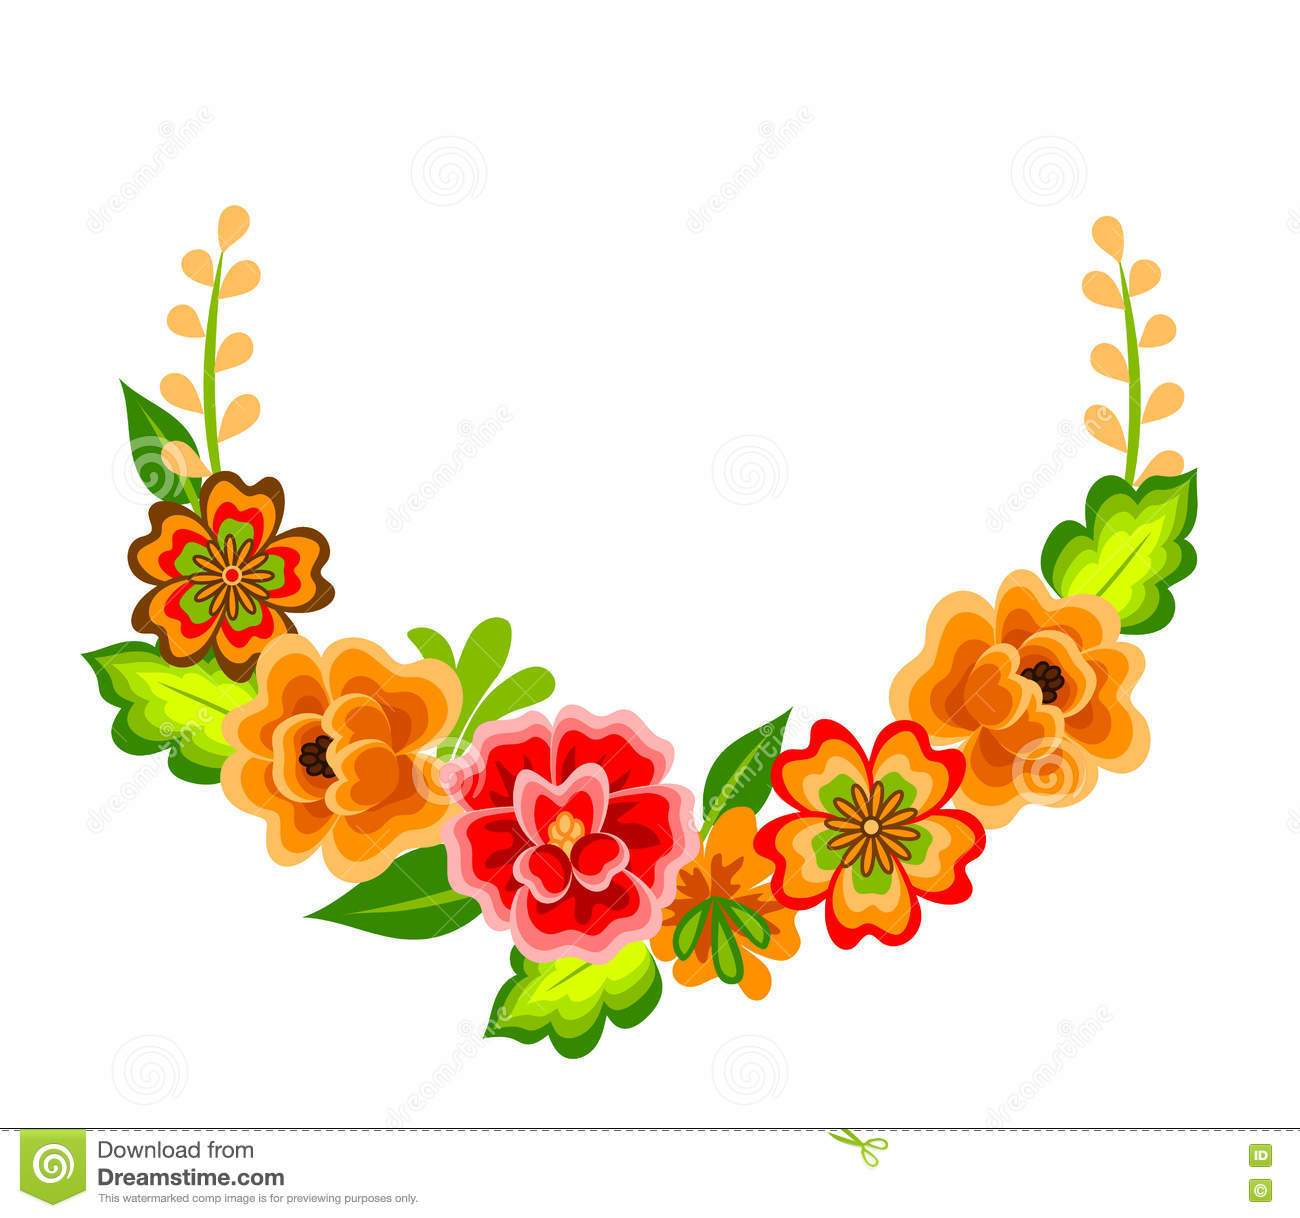 Mexican flowers clipart png 3 » Clipart Portal.